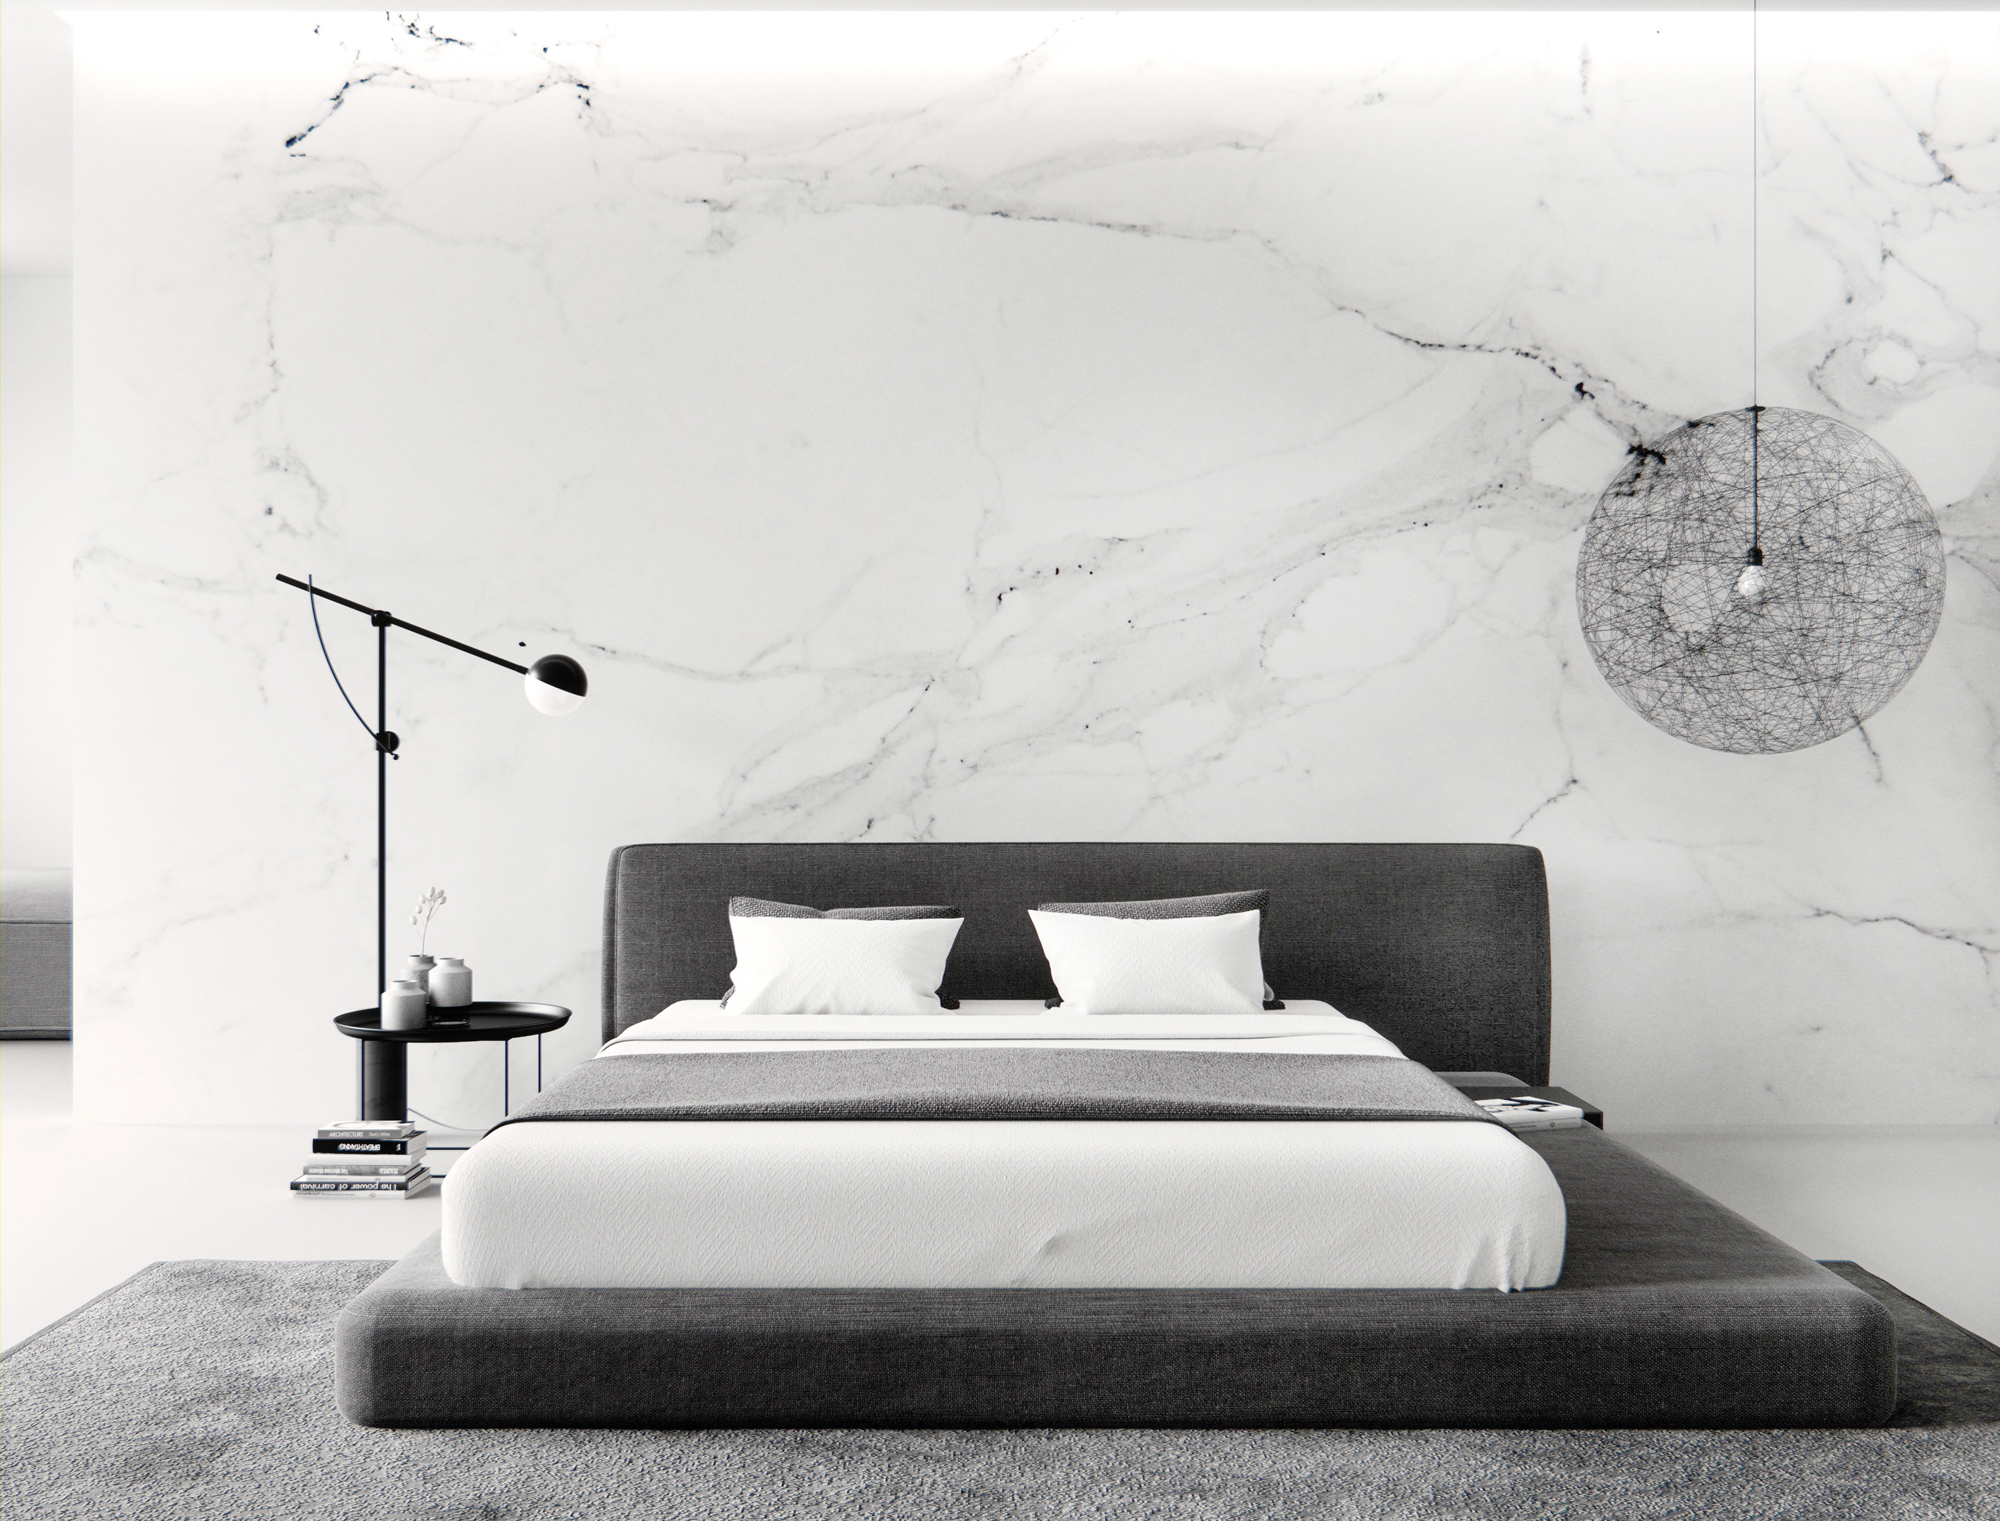 Bedroom Ideas 52 Modern Design Ideas For Your Bedroom The Luxpad in 15 Awesome Ideas How to Improve Modern Gray Bedroom Ideas